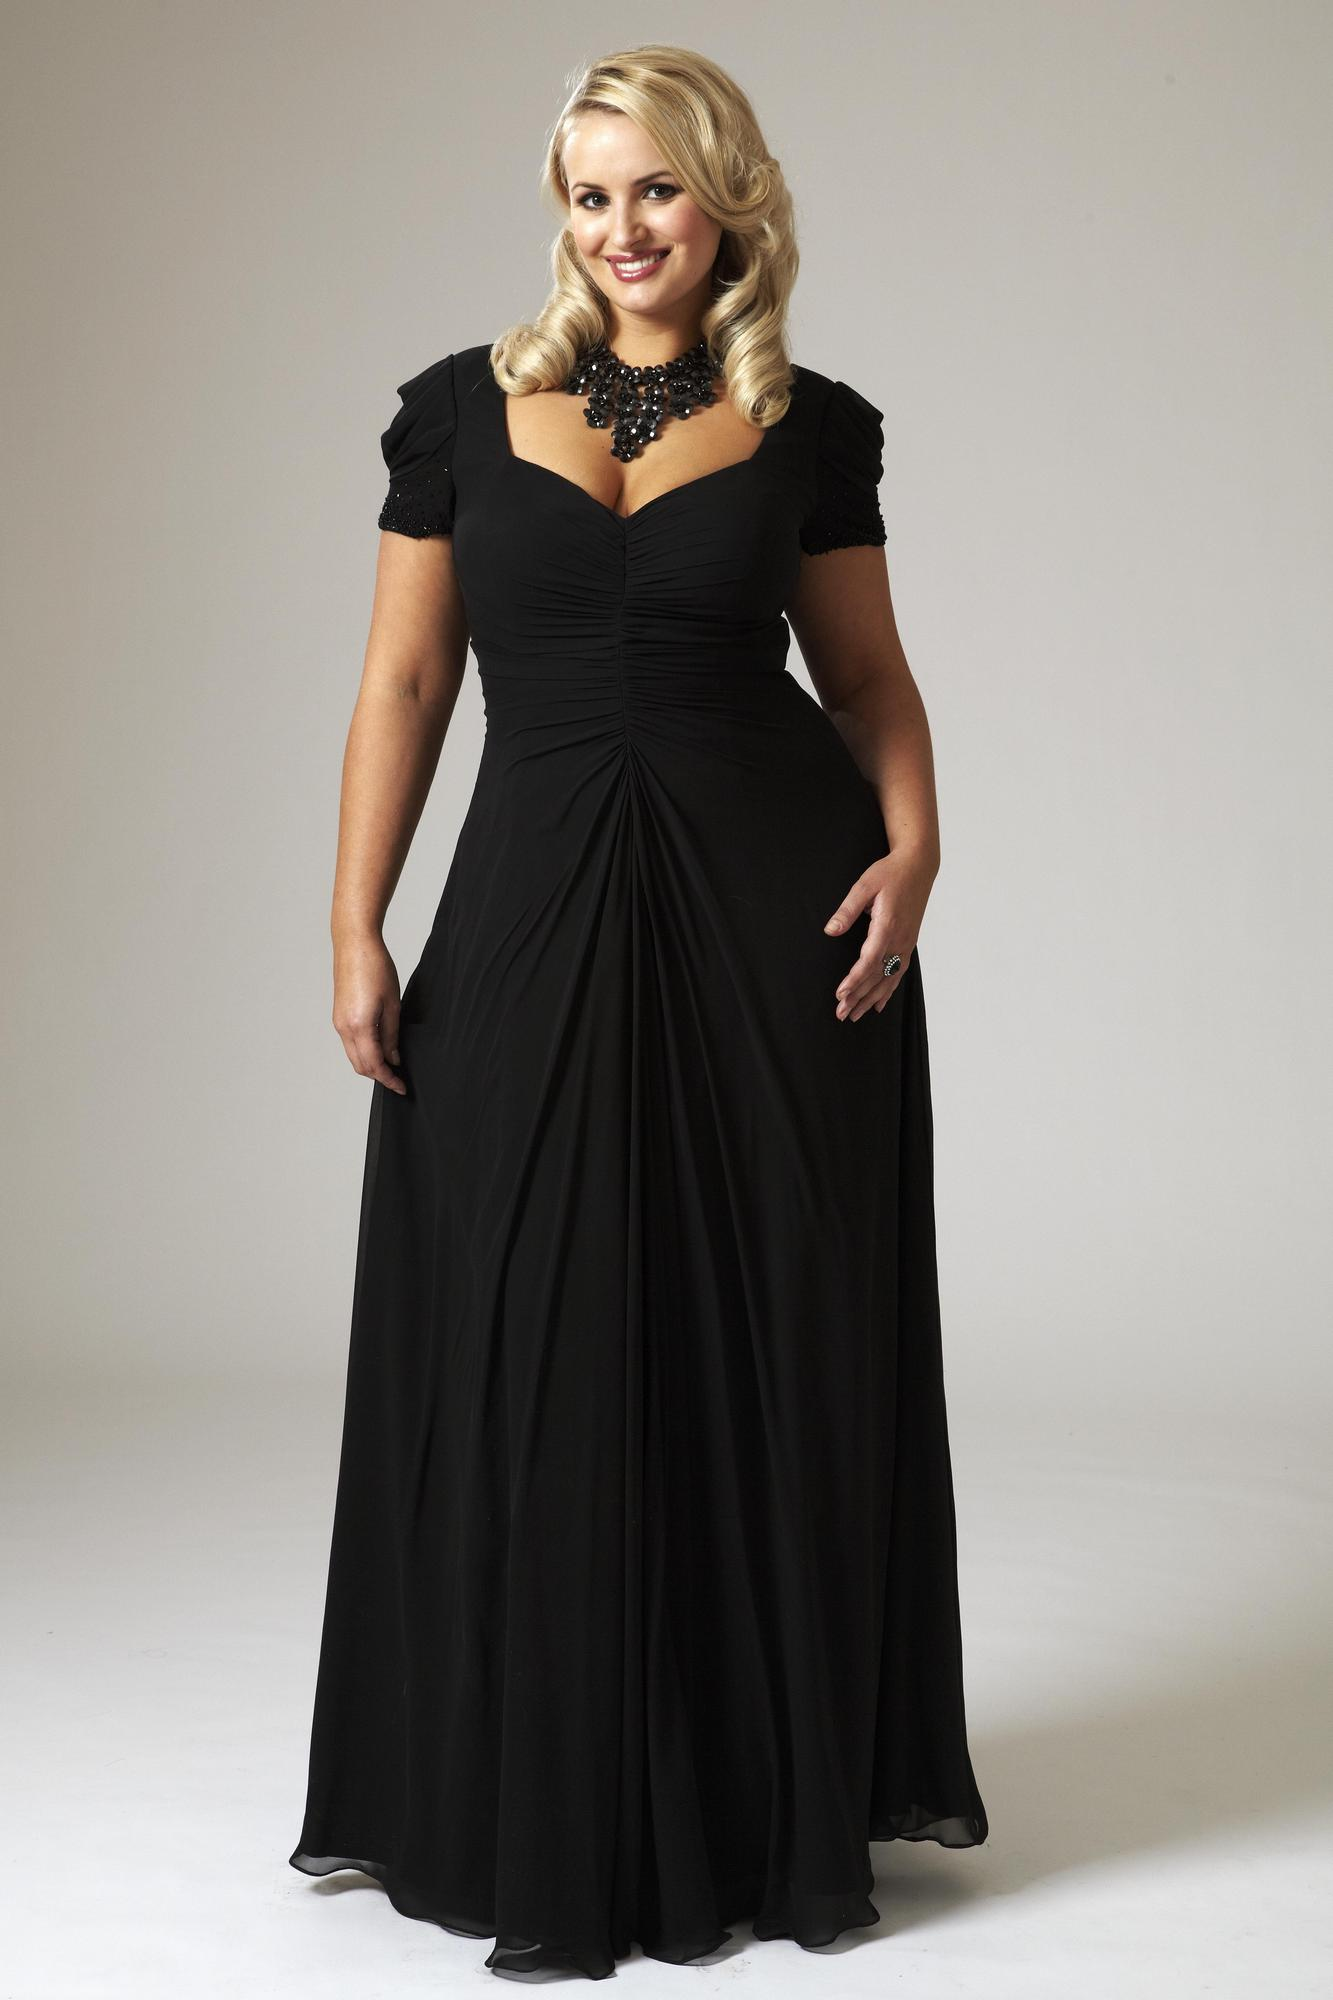 Plus size formal dress patterns style jeans for Plus size wedding dresses near me